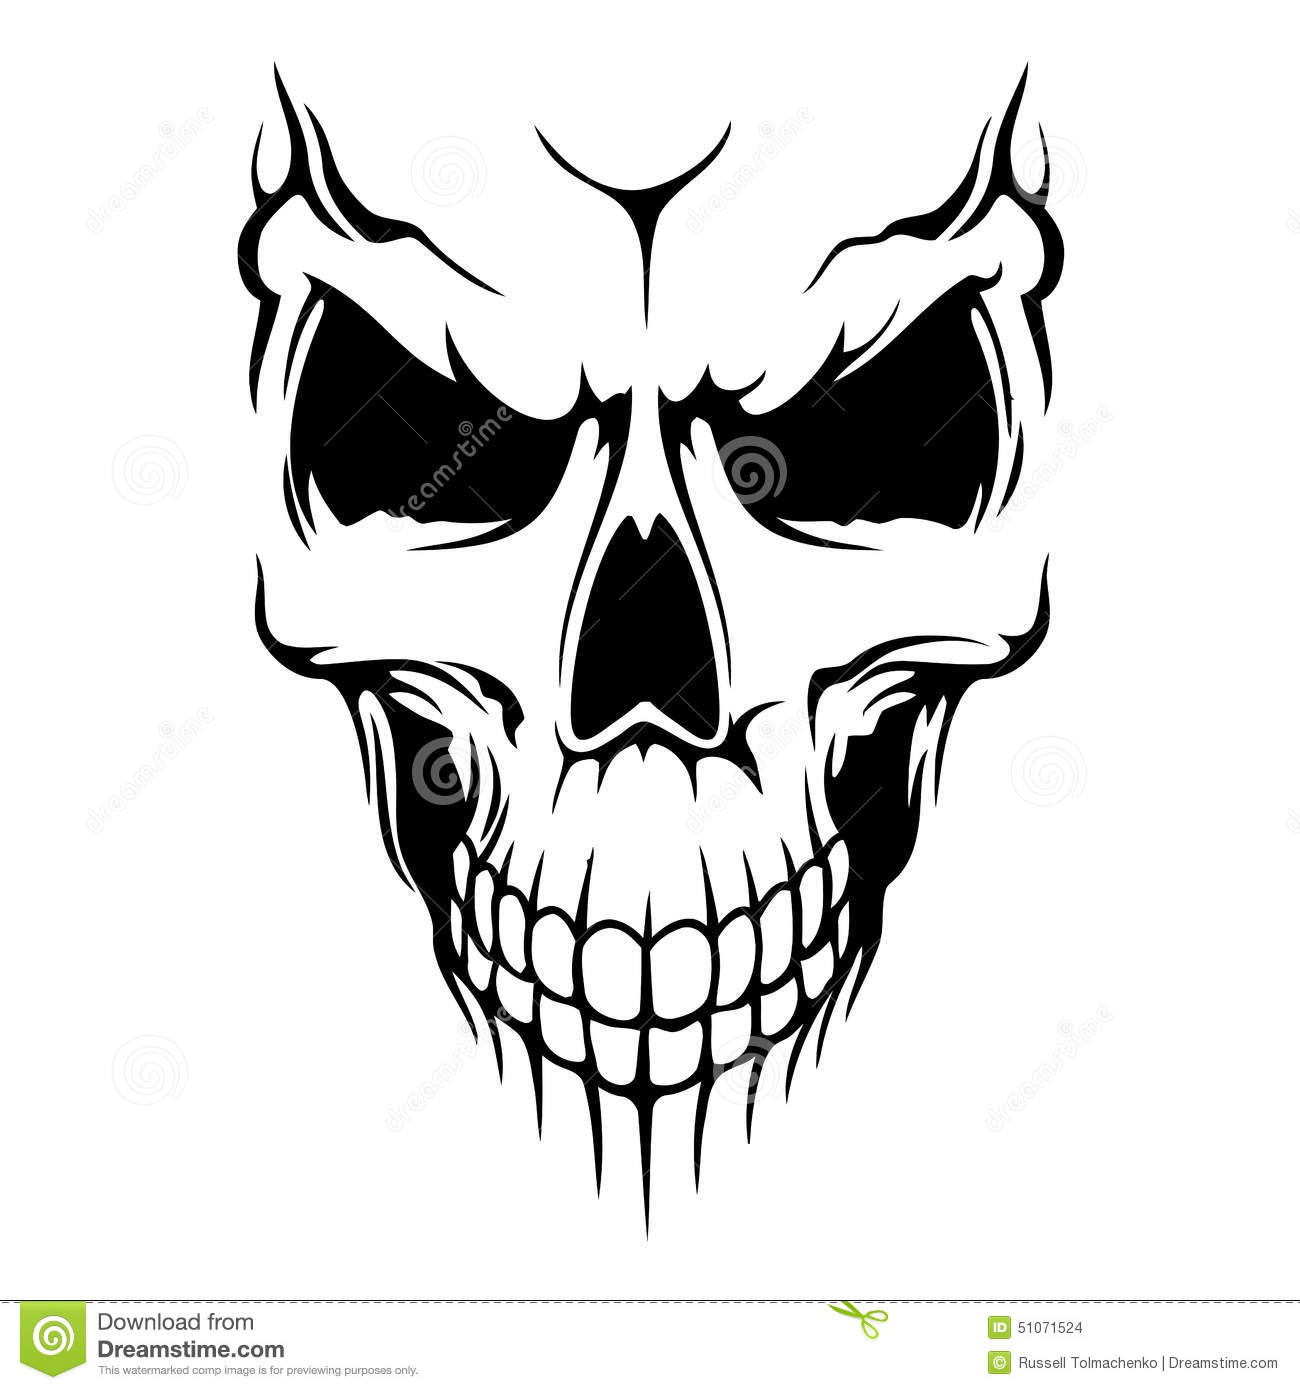 Skull Vector Stock Vector. Illustration Of Design, Bone